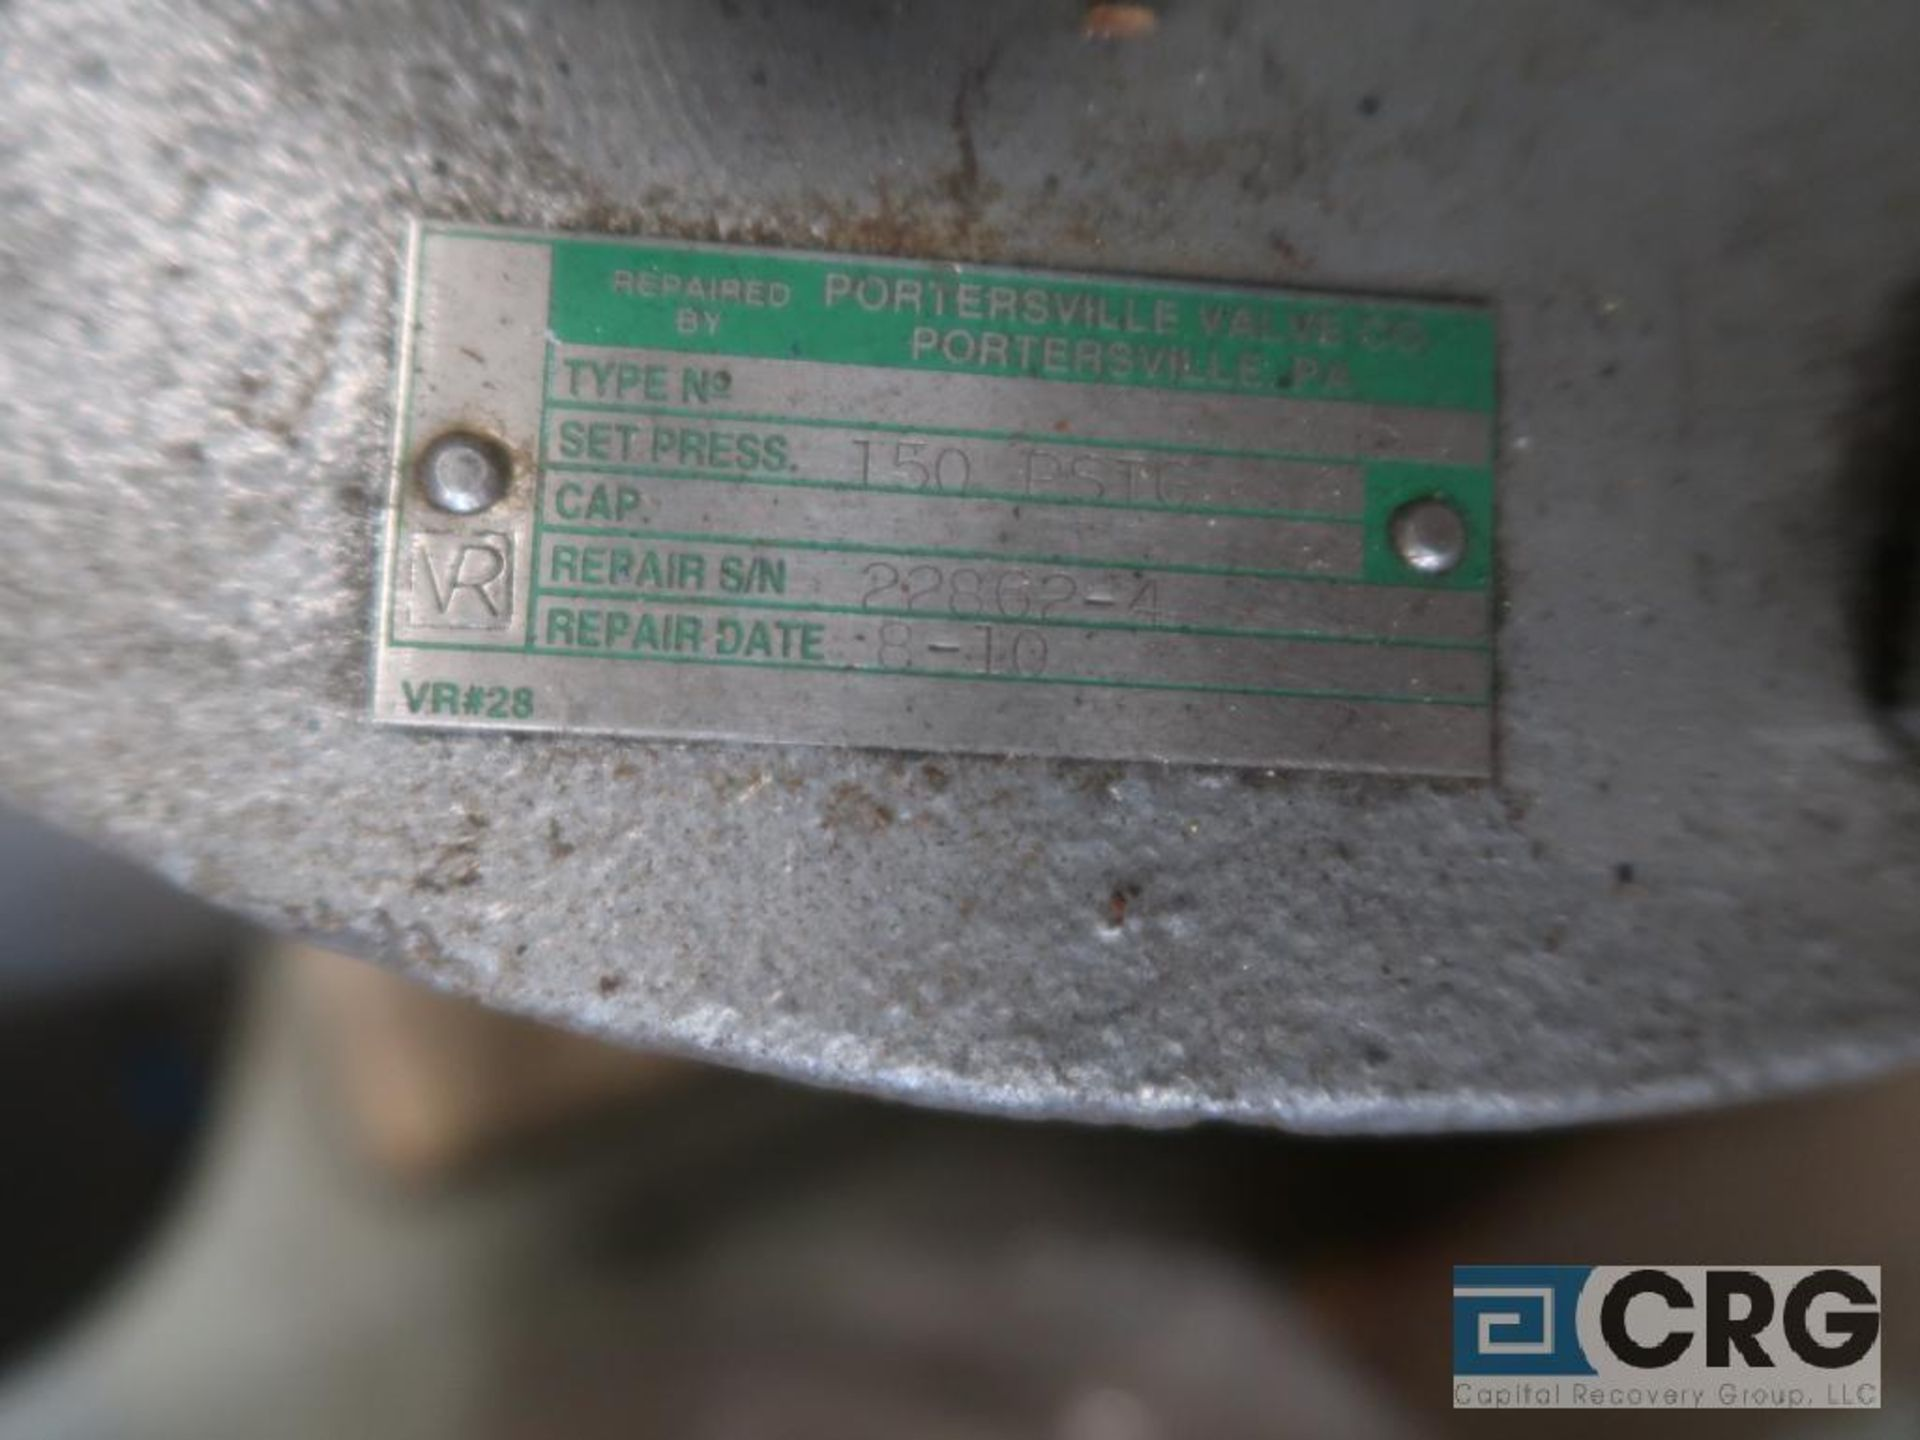 Consolidate 8 in. safety relief valve CL 150 (Store Basement) - Image 2 of 2